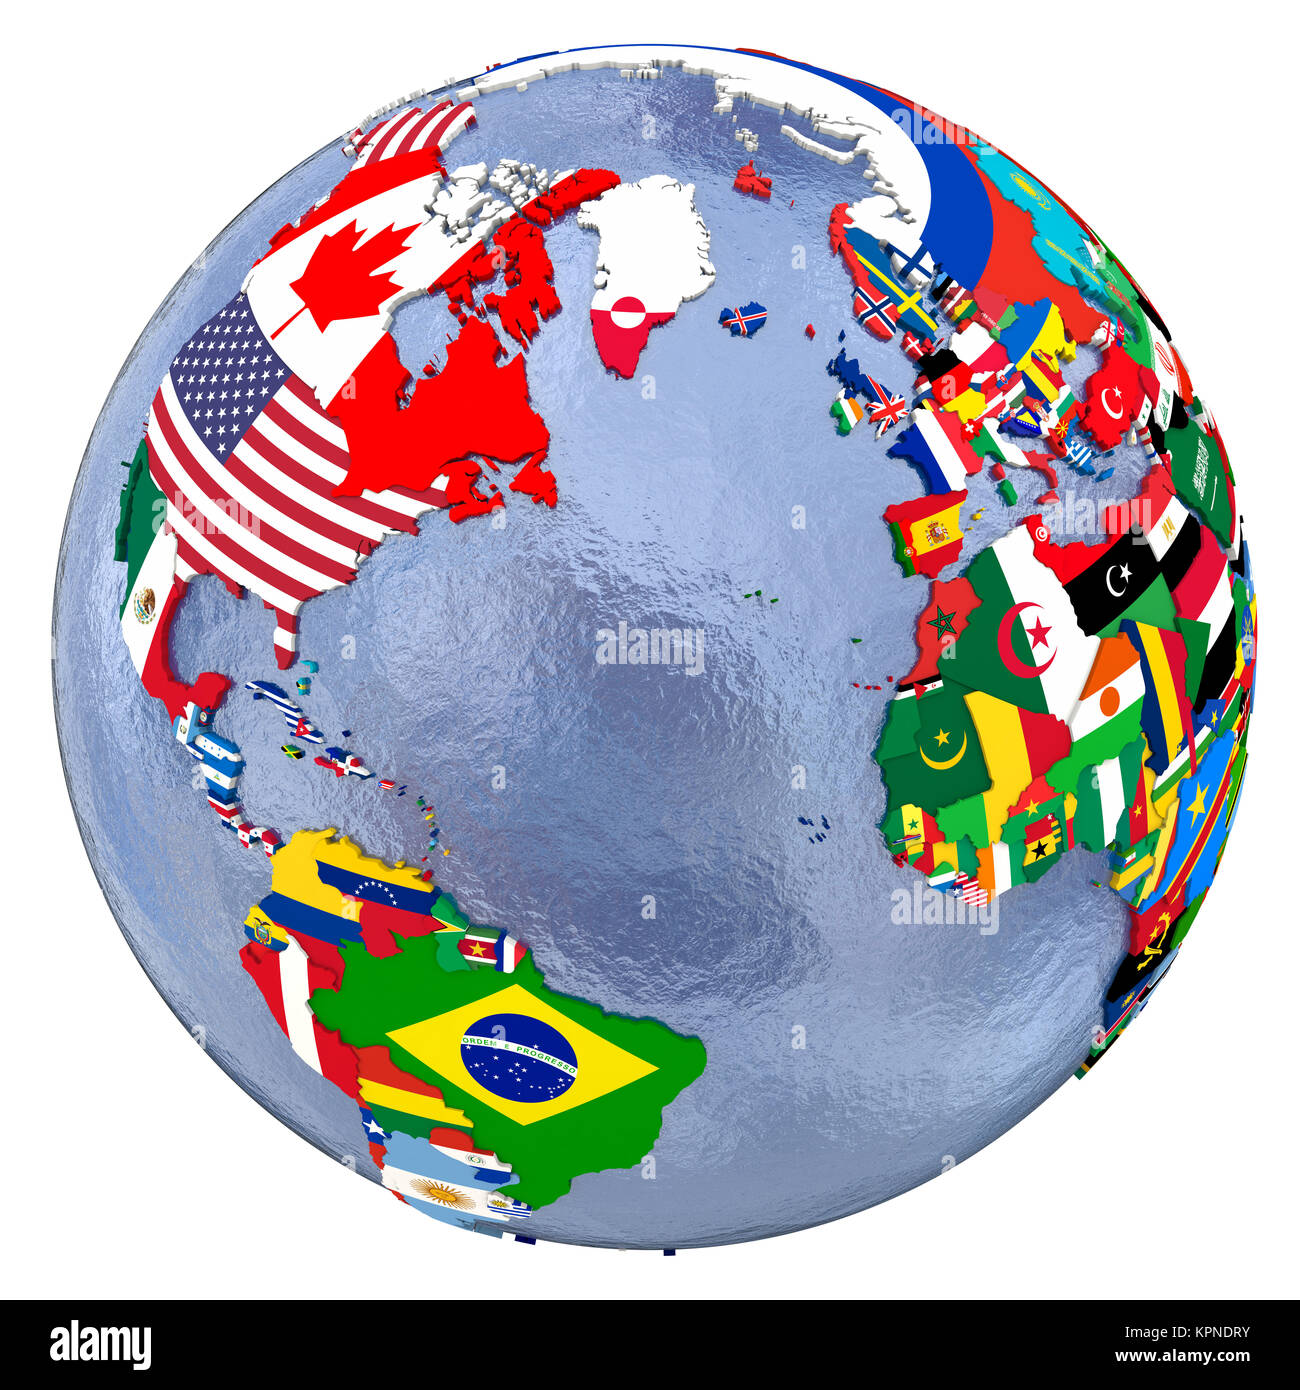 Political Northern Hemisphere Map   Stock Image